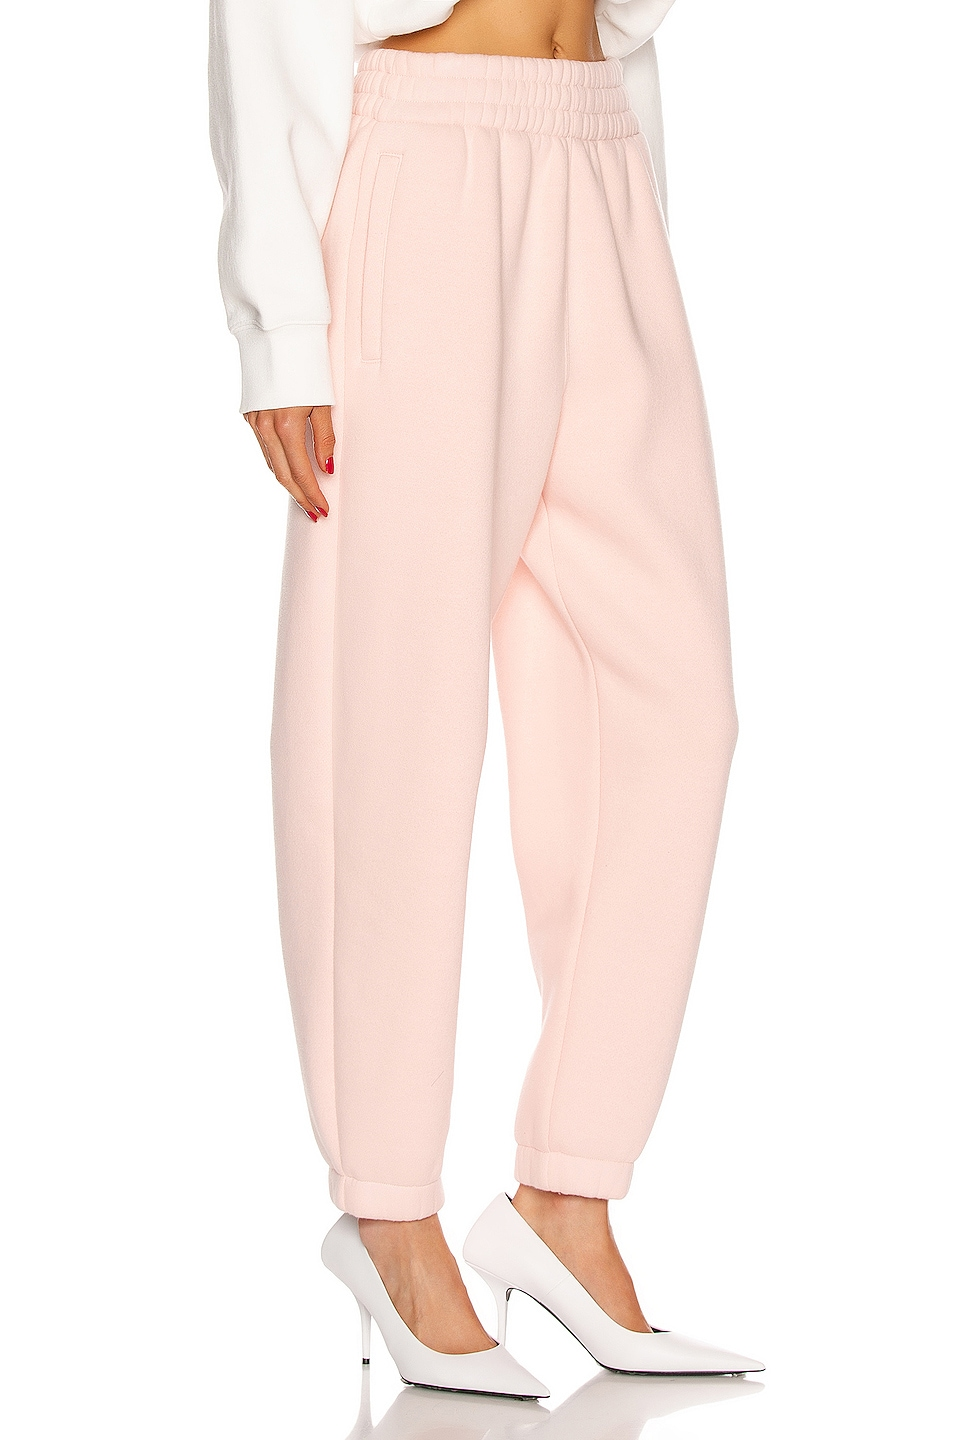 Image 2 of T by Alexander Wang Puff Paint Pant in Light Melon